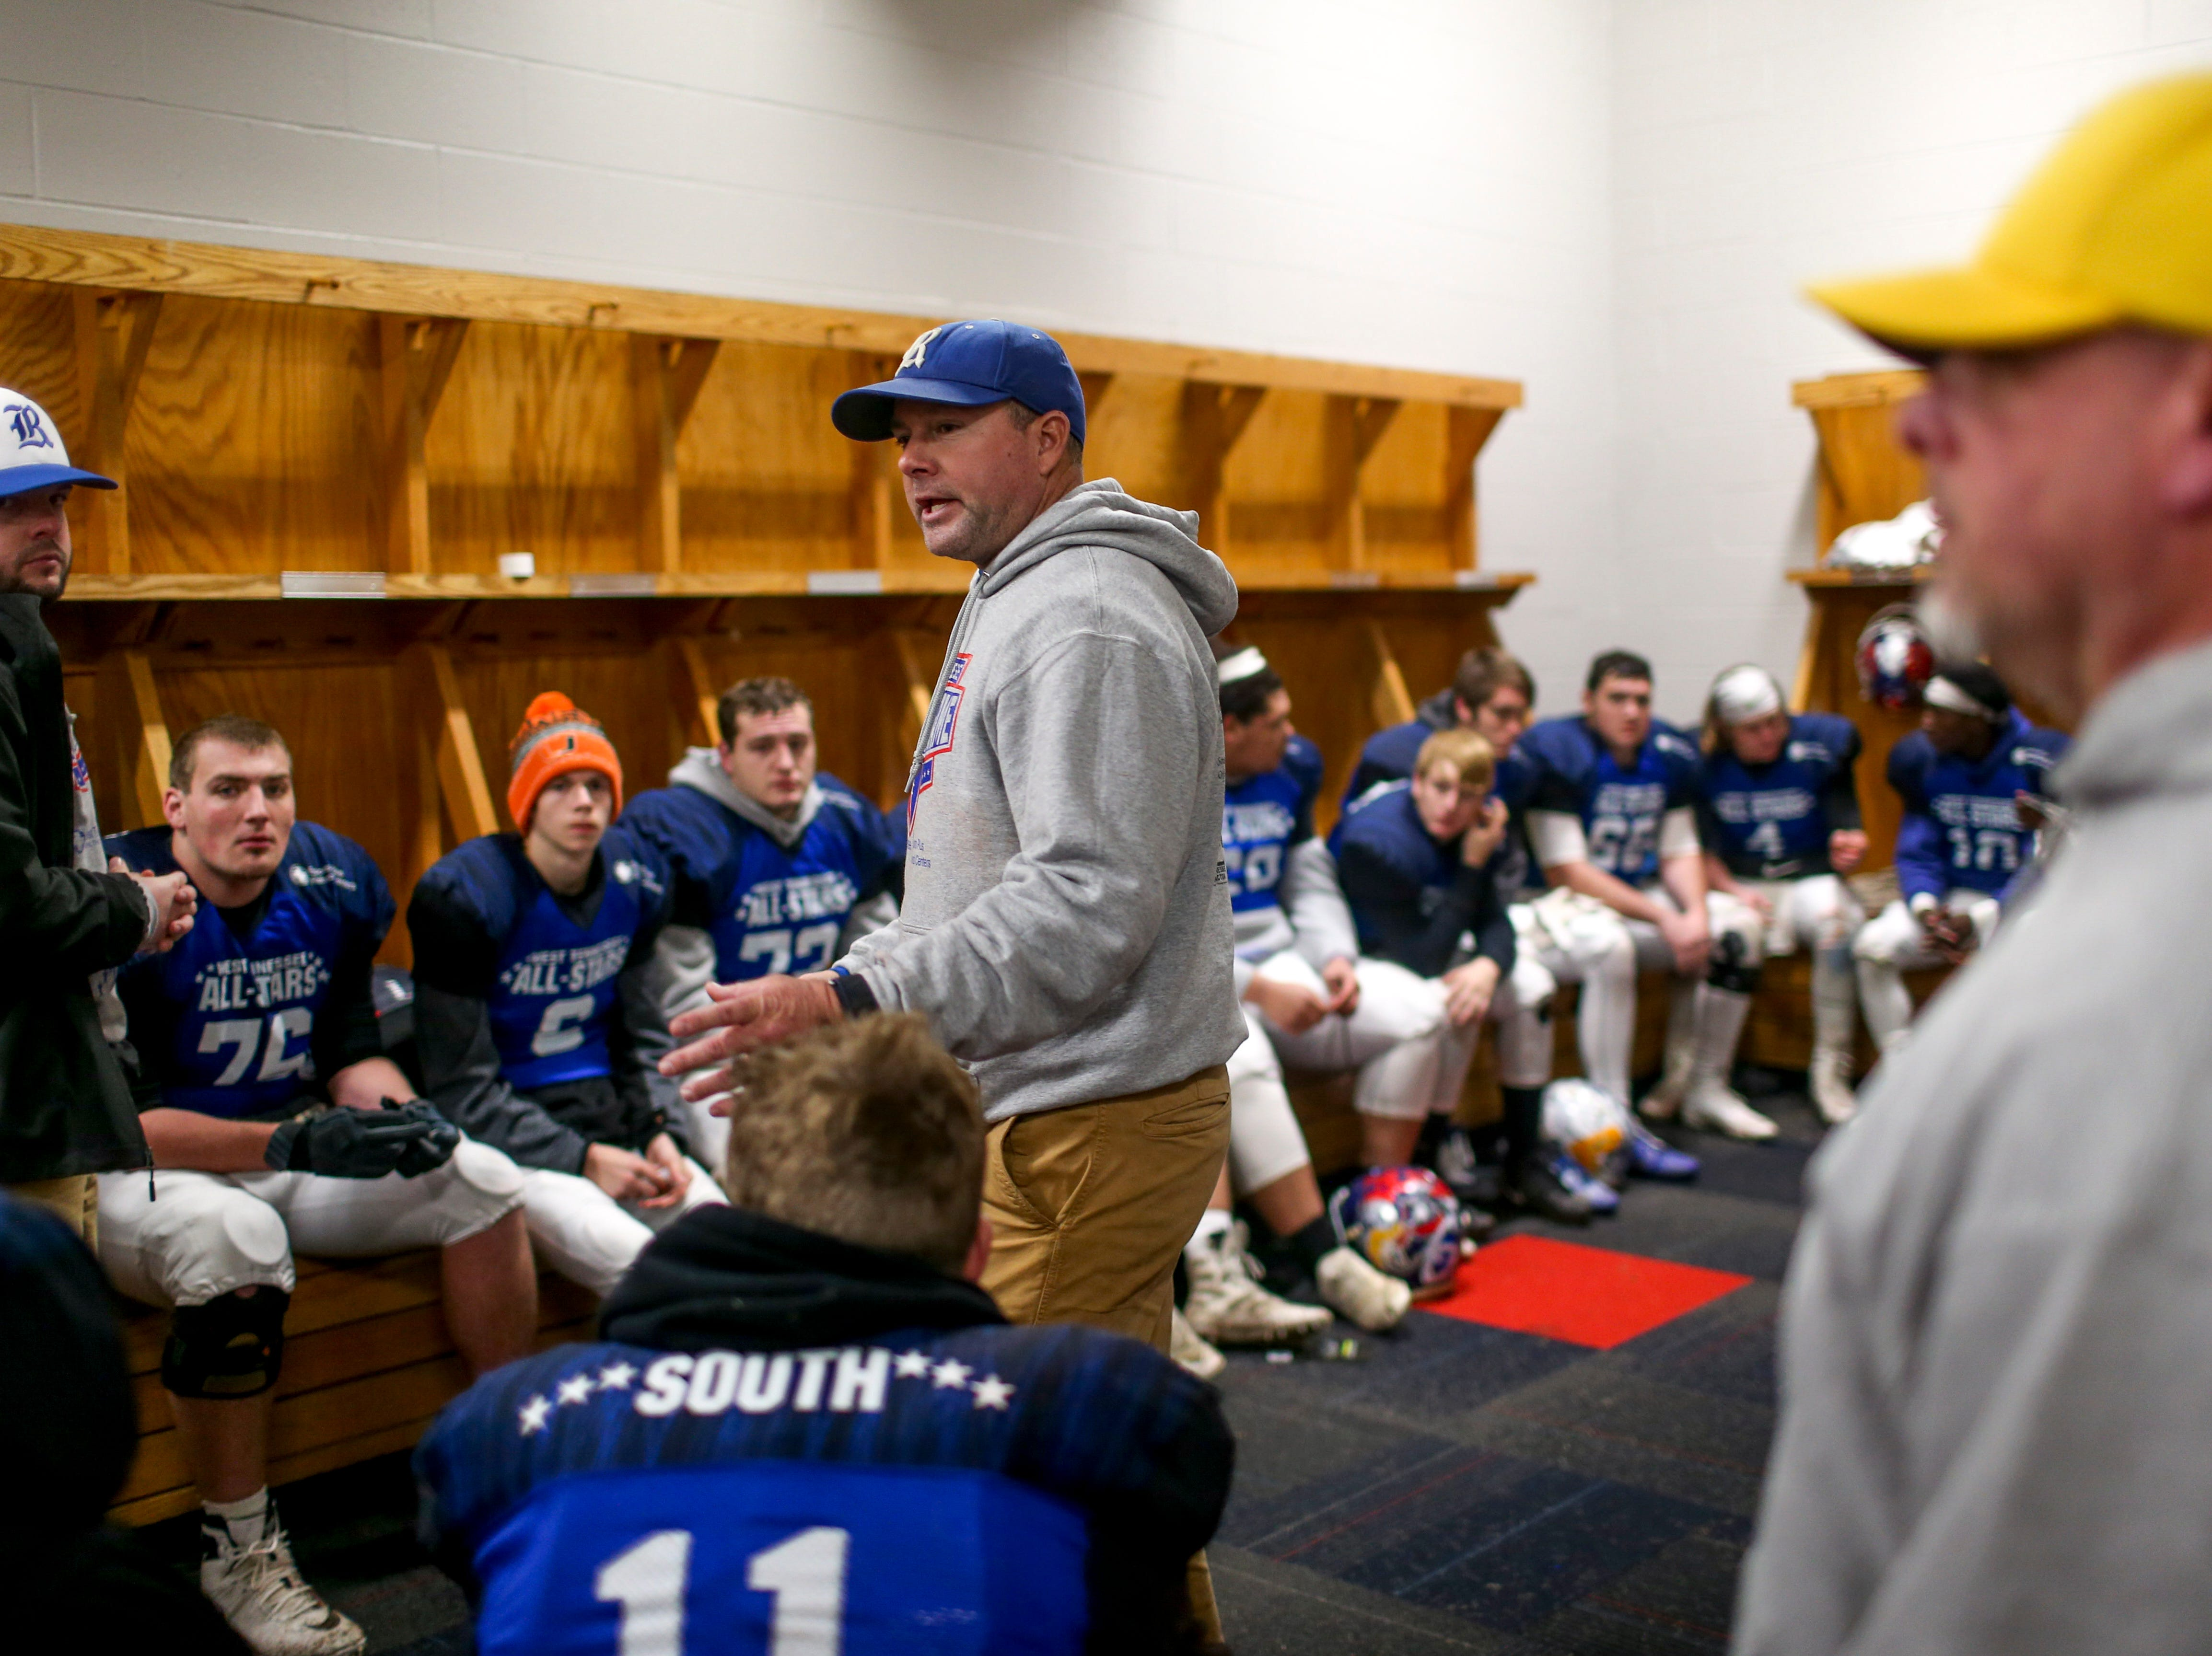 South players discuss strategy at half time during the West Tennessee All-Star football game at University School of Jackson in Jackson, Tenn., on Friday, Dec. 7, 2018.